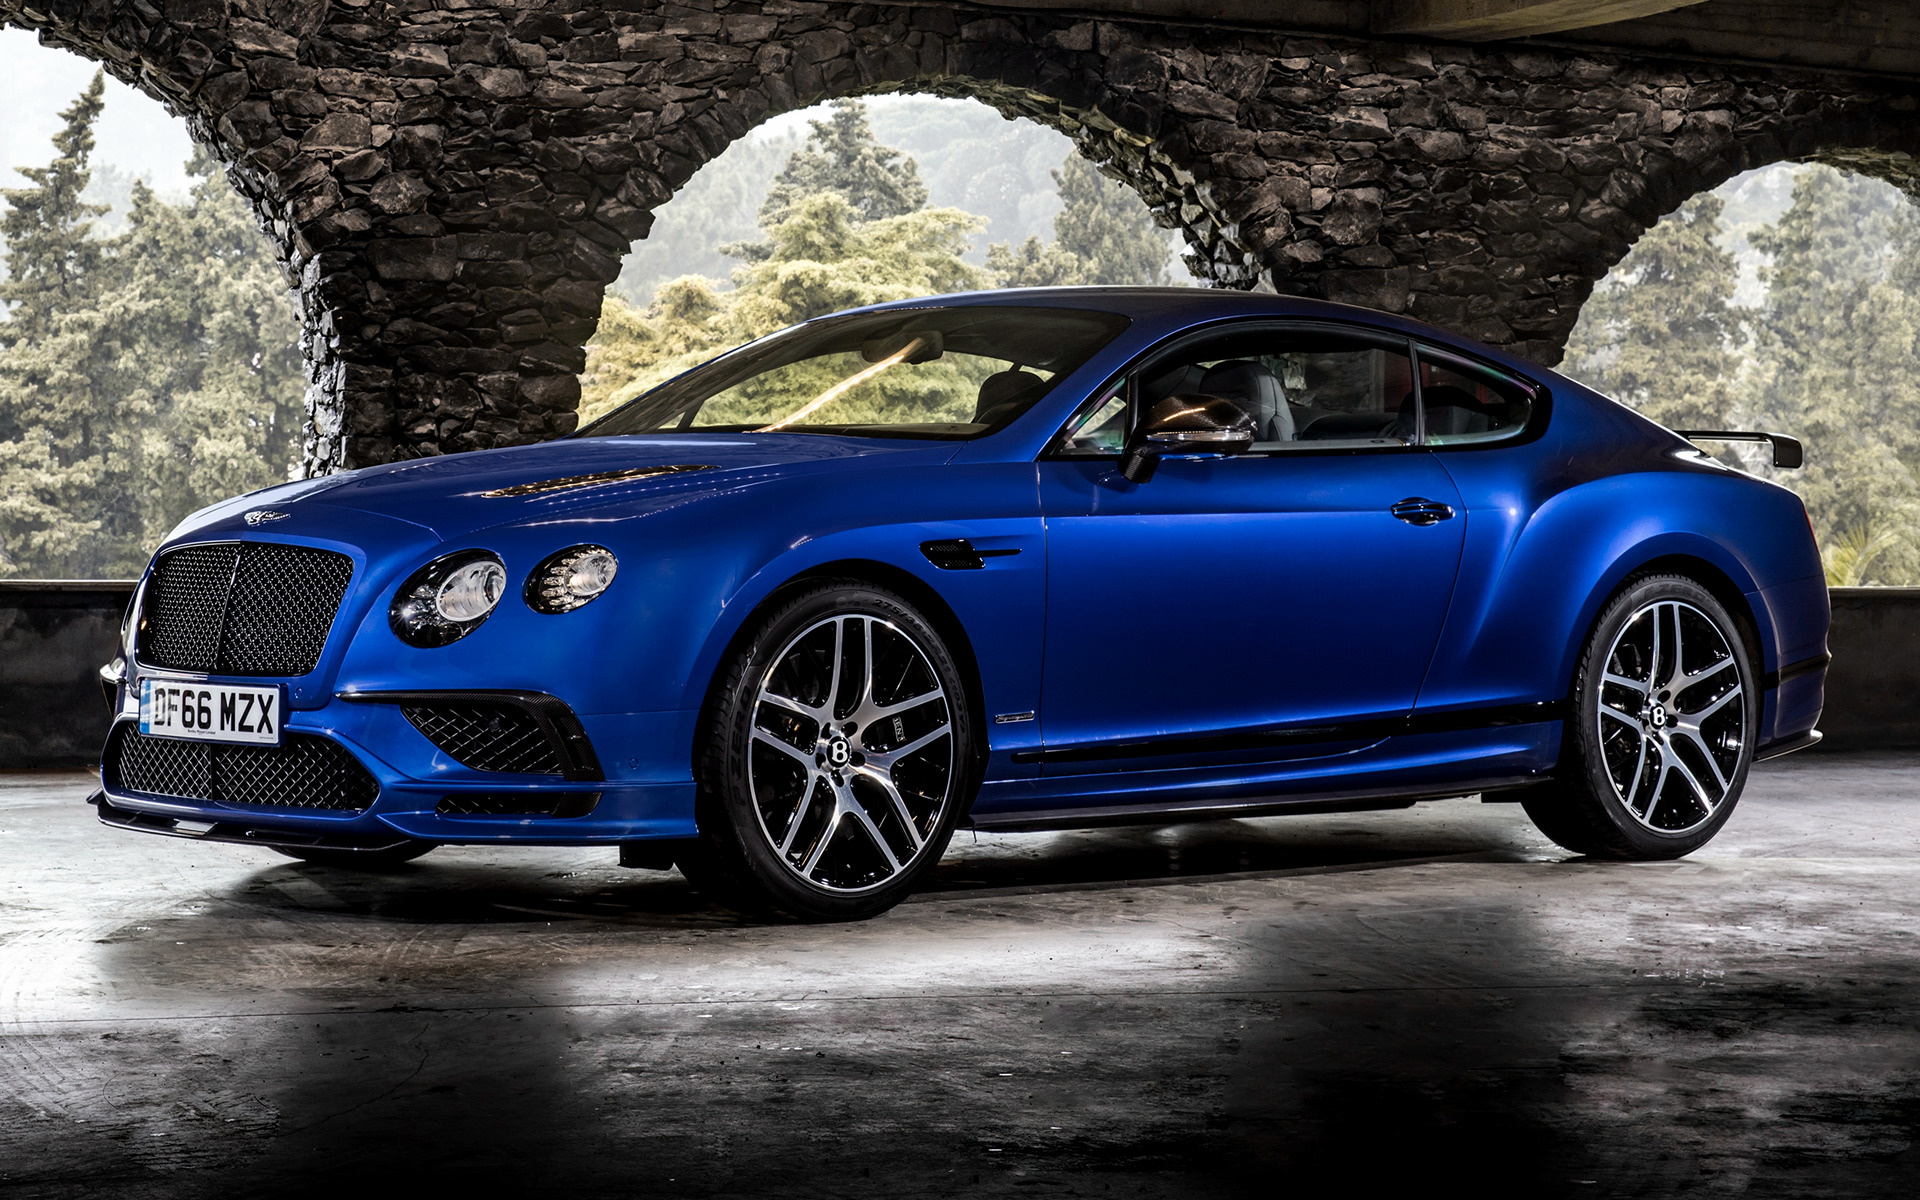 2017 Bentley Continental Gt Convertible >> 2017 Bentley Continental Supersports - Wallpapers and HD Images | Car Pixel